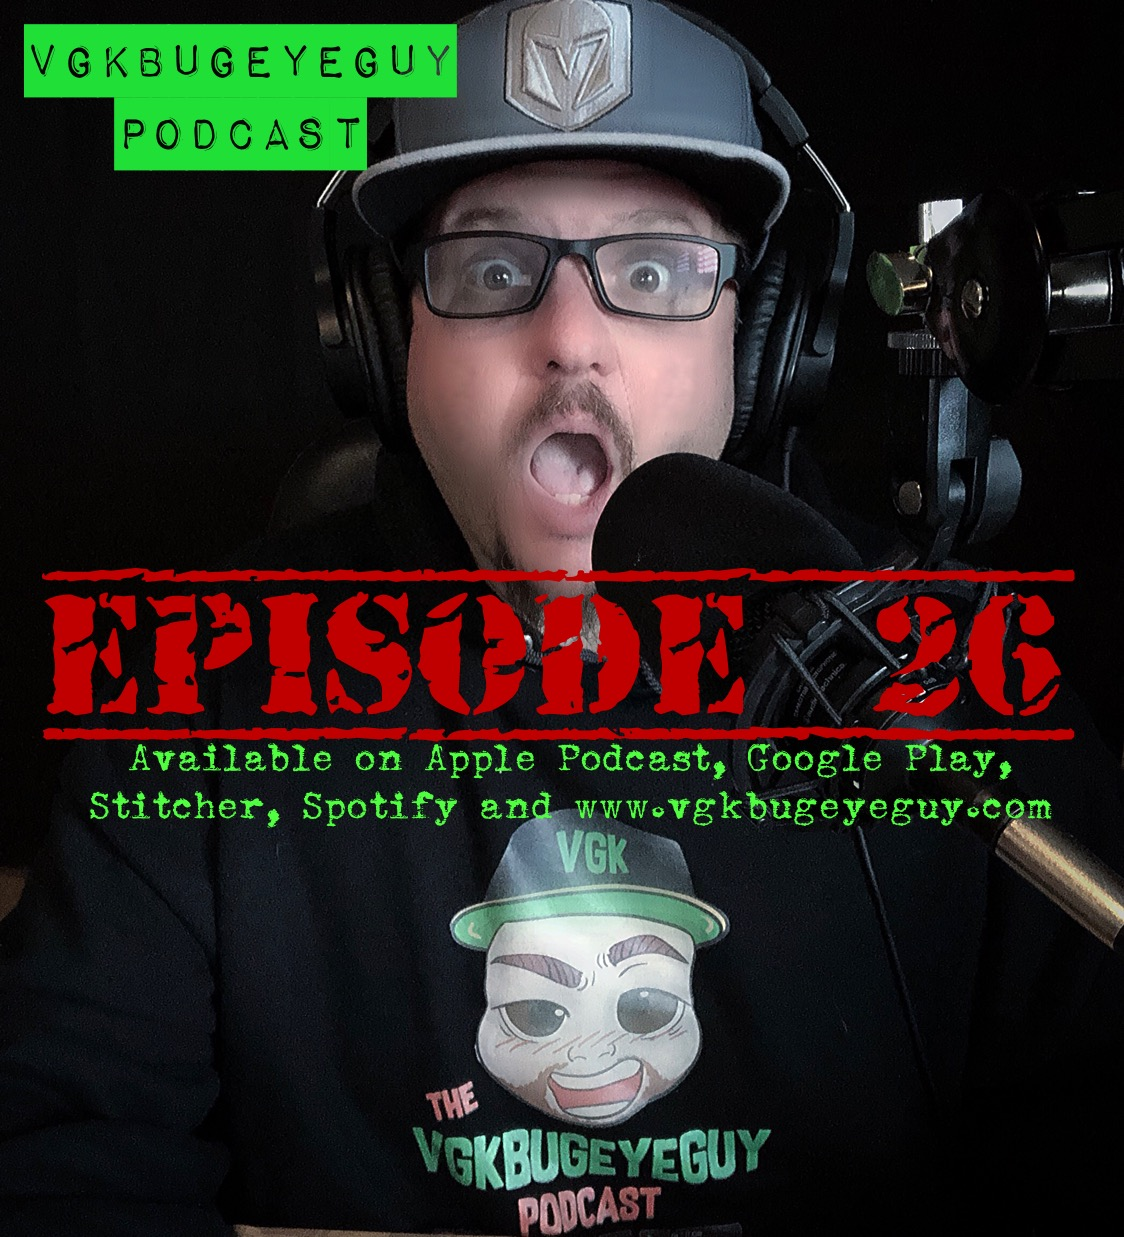 Episode 26: 7 Game winning streak snapped, Reaves finally fights at the Fortress, OT comeback win over the Blackhawks